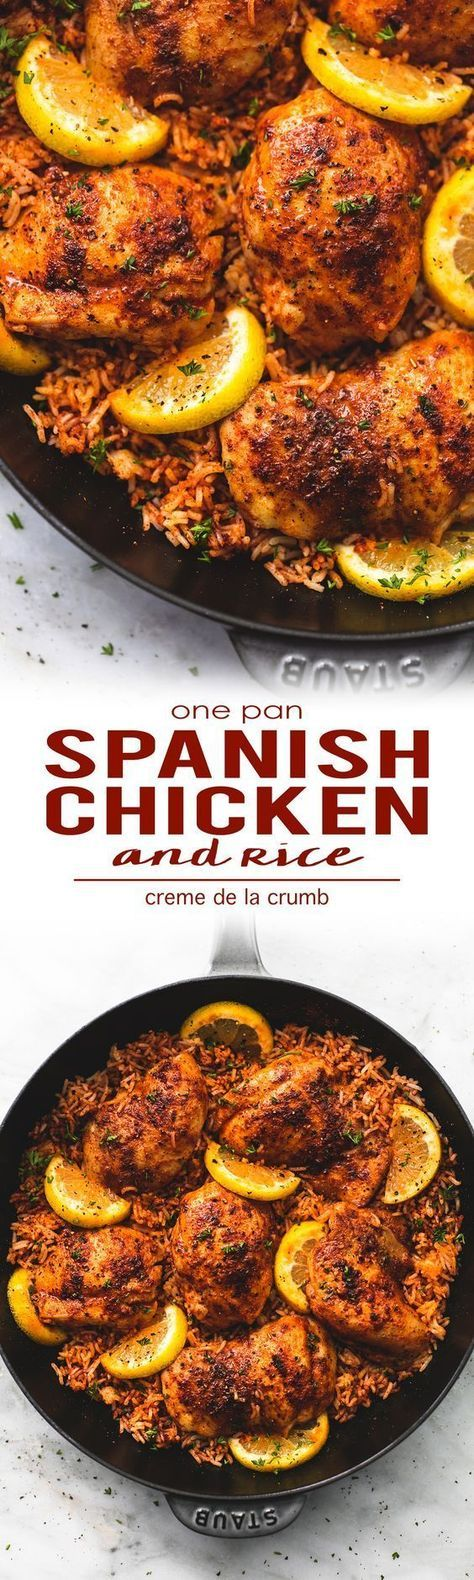 Easy and healthy One Pan Spanish Chicken and Rice 30 minute meal   lecremedelacrumb.com